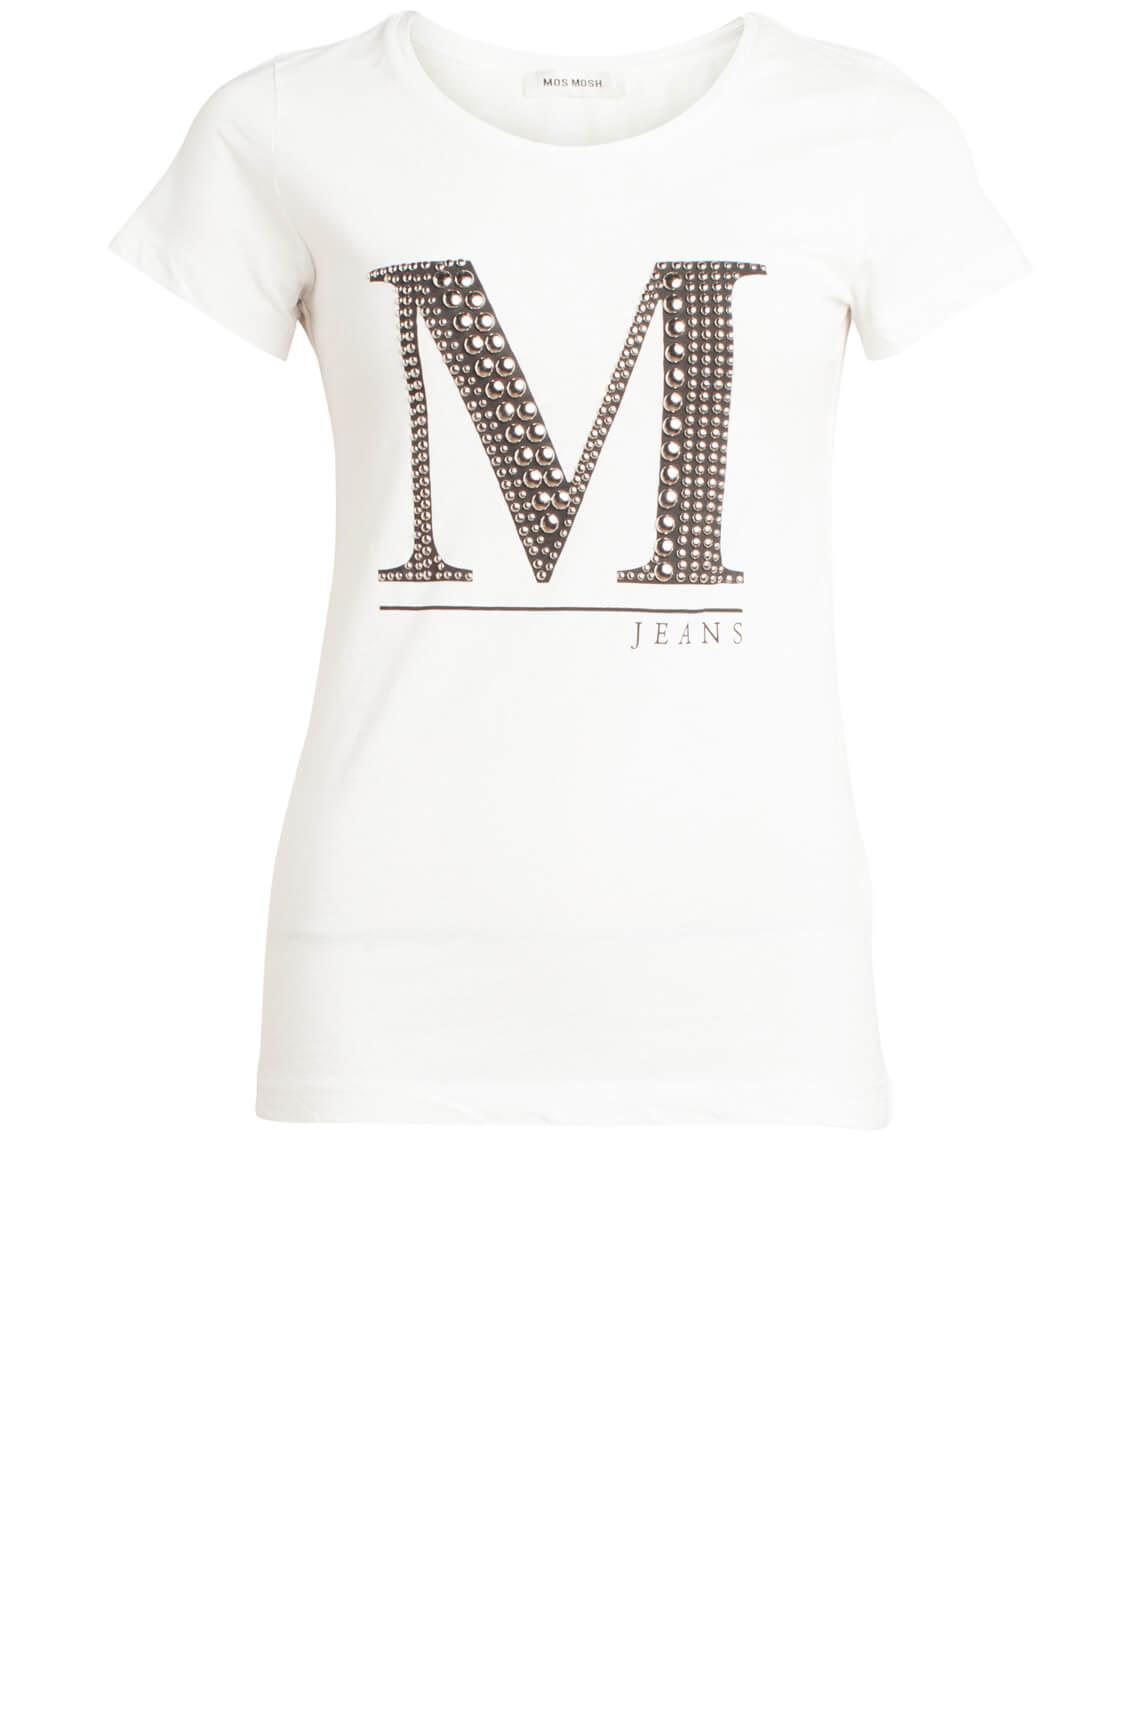 Mos Mosh Dames Rivatee shirt wit